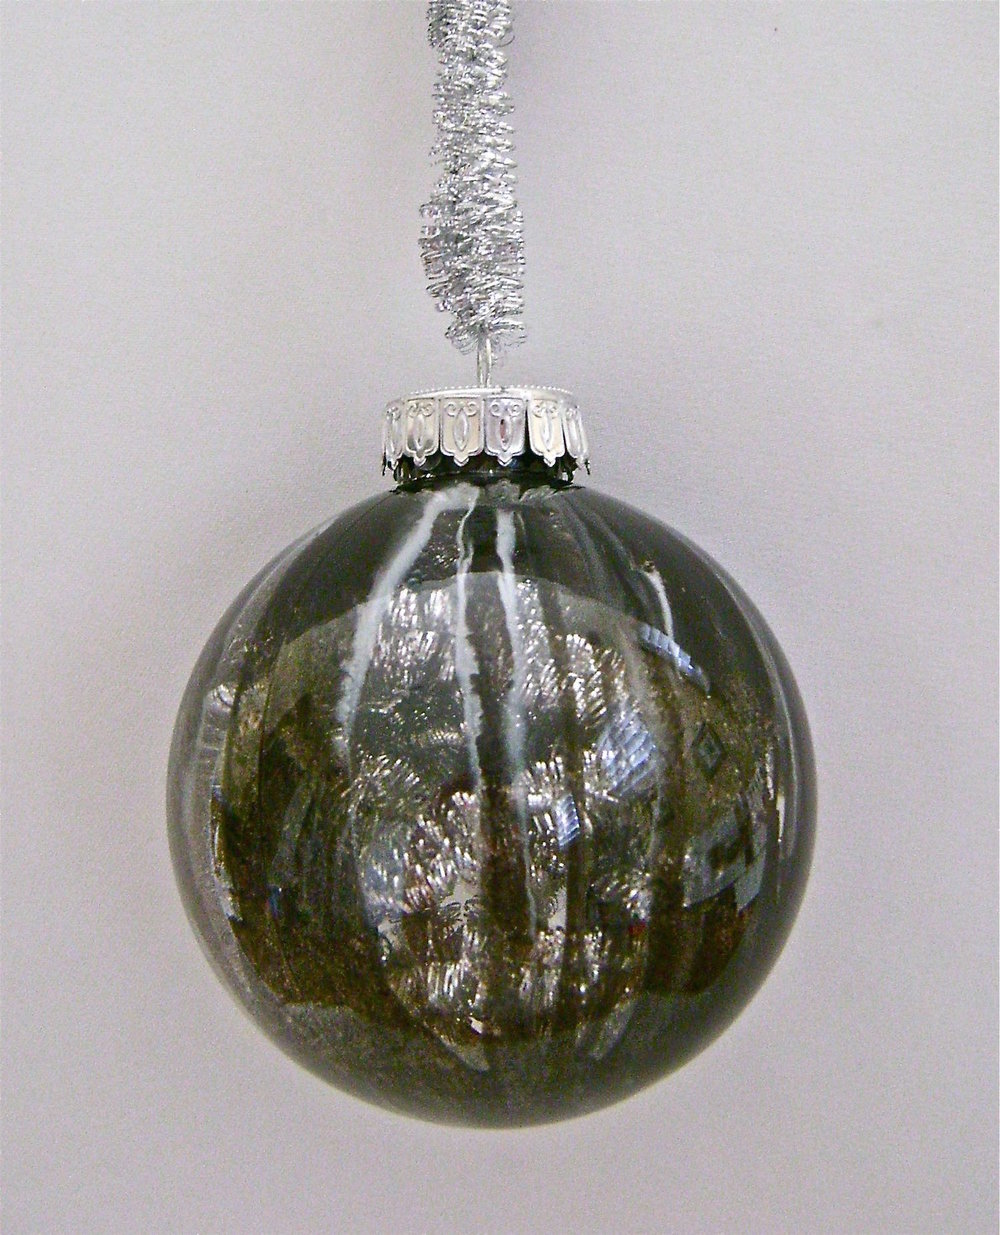 Black Ornament   Apply black, silver and white paint, leaving large gaps between sections.  When the paint is dry, fill the ornament with silver tinsel garland (the kind pictured for the ornament hanger).